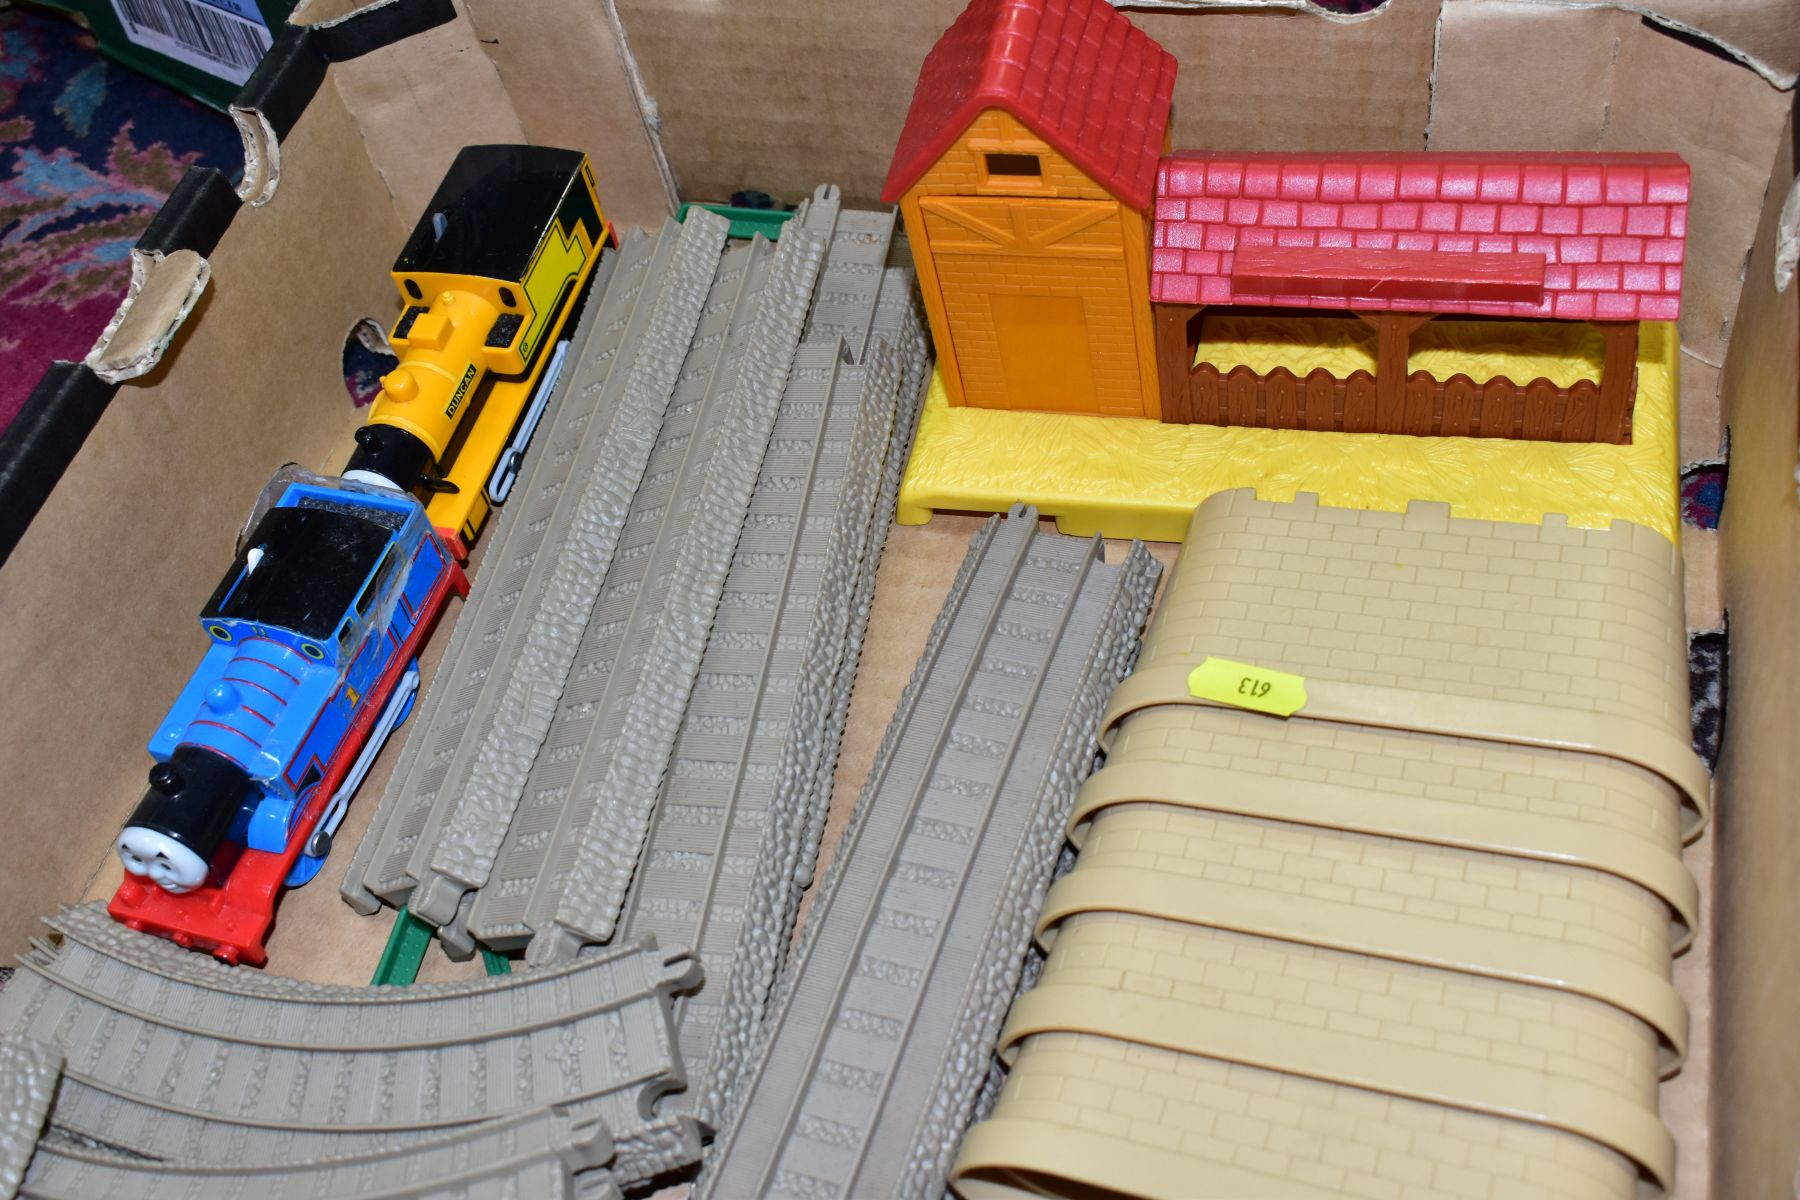 A QUANTITY OF UNBOXED AND ASSORTED HORNBY MICRO SCALEXTRIC, to include assorted cars, track, - Image 4 of 5